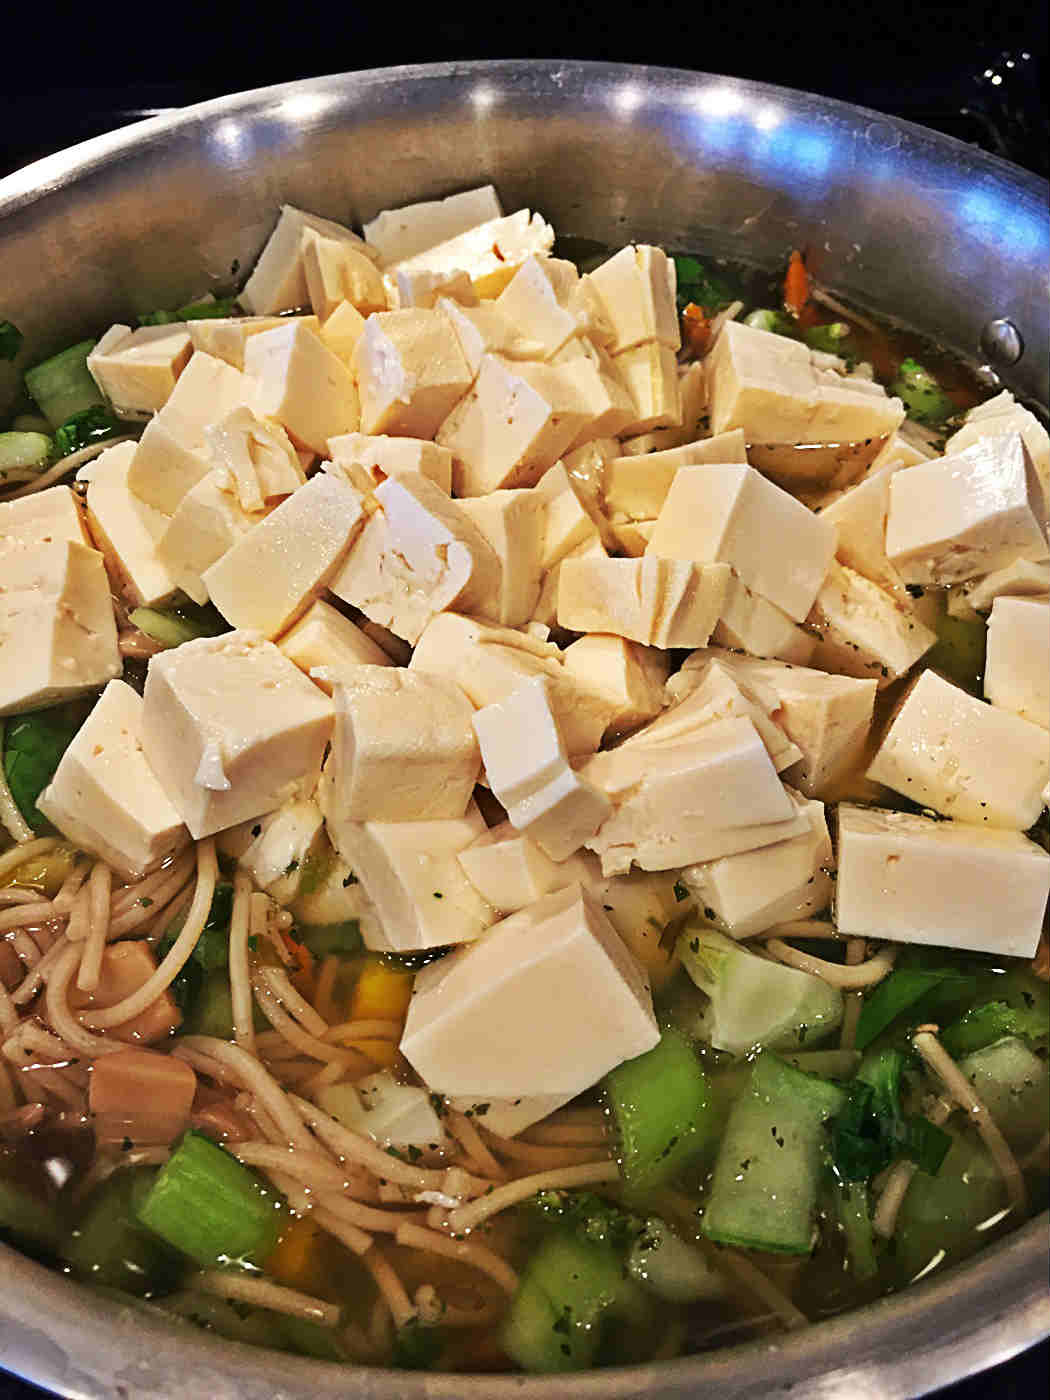 Adding the tofu to the soup